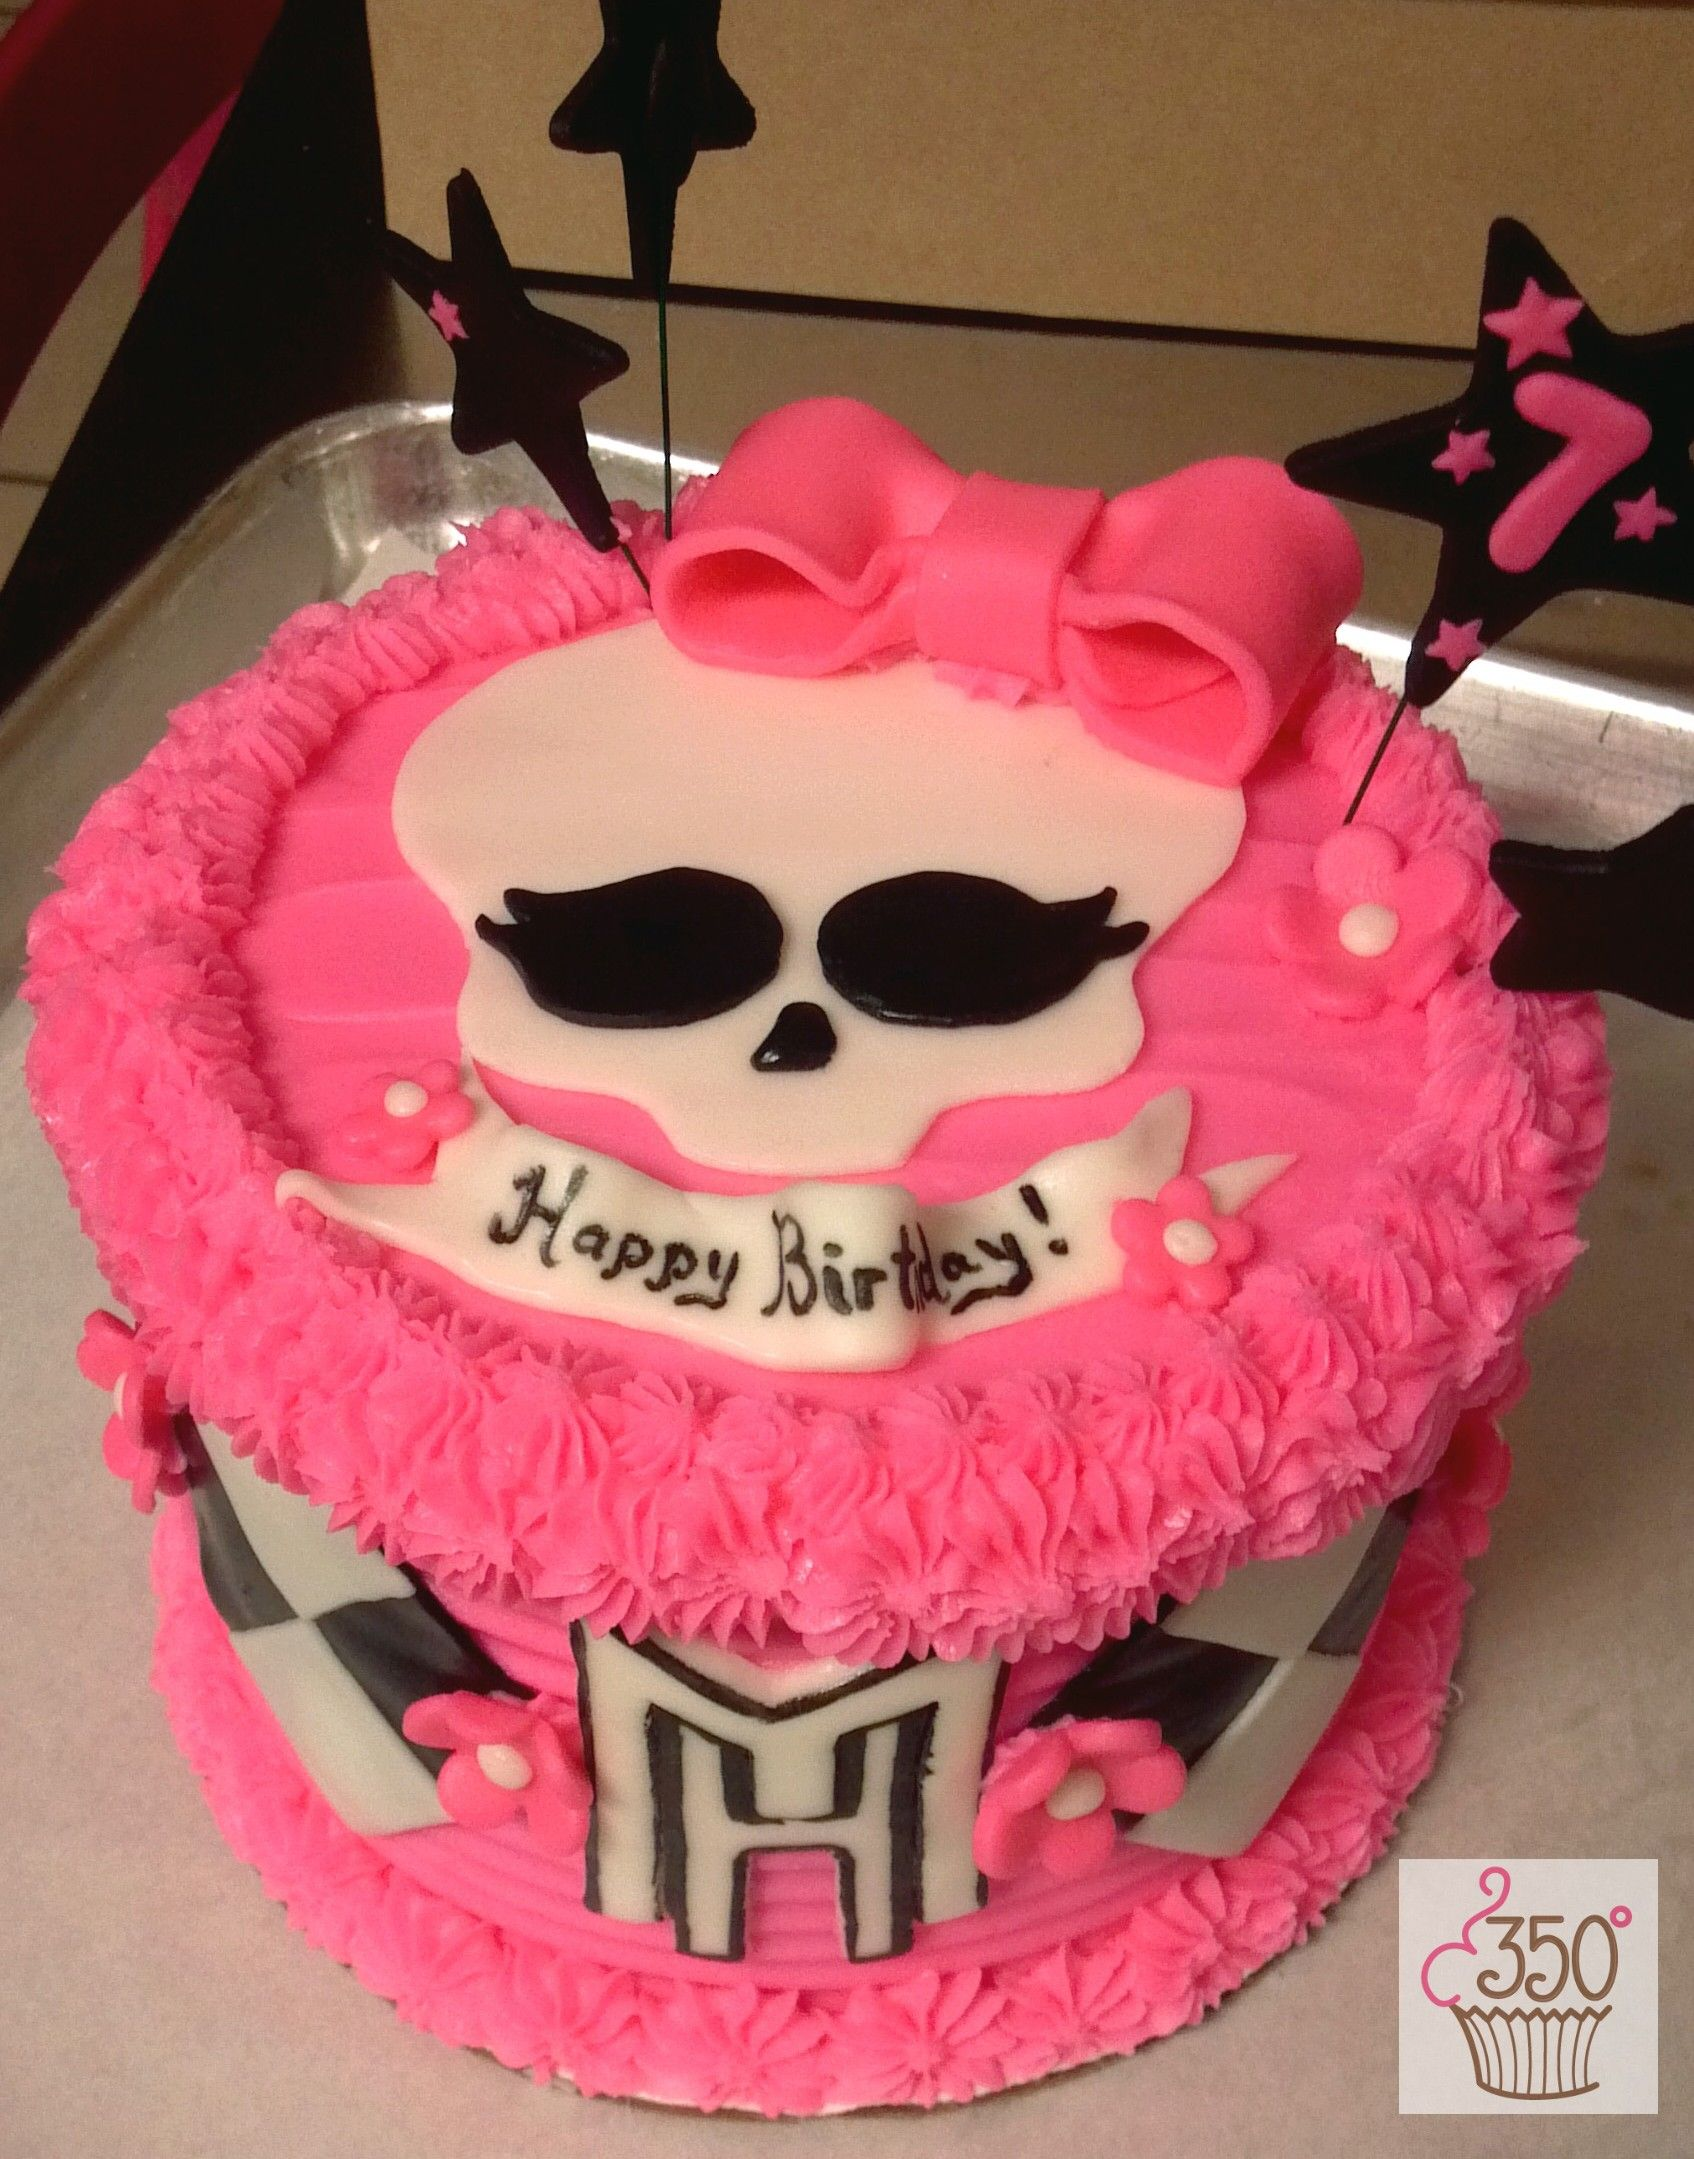 Monster High Cake made by 350 Classic Bakeshop in Mamaroneck NY